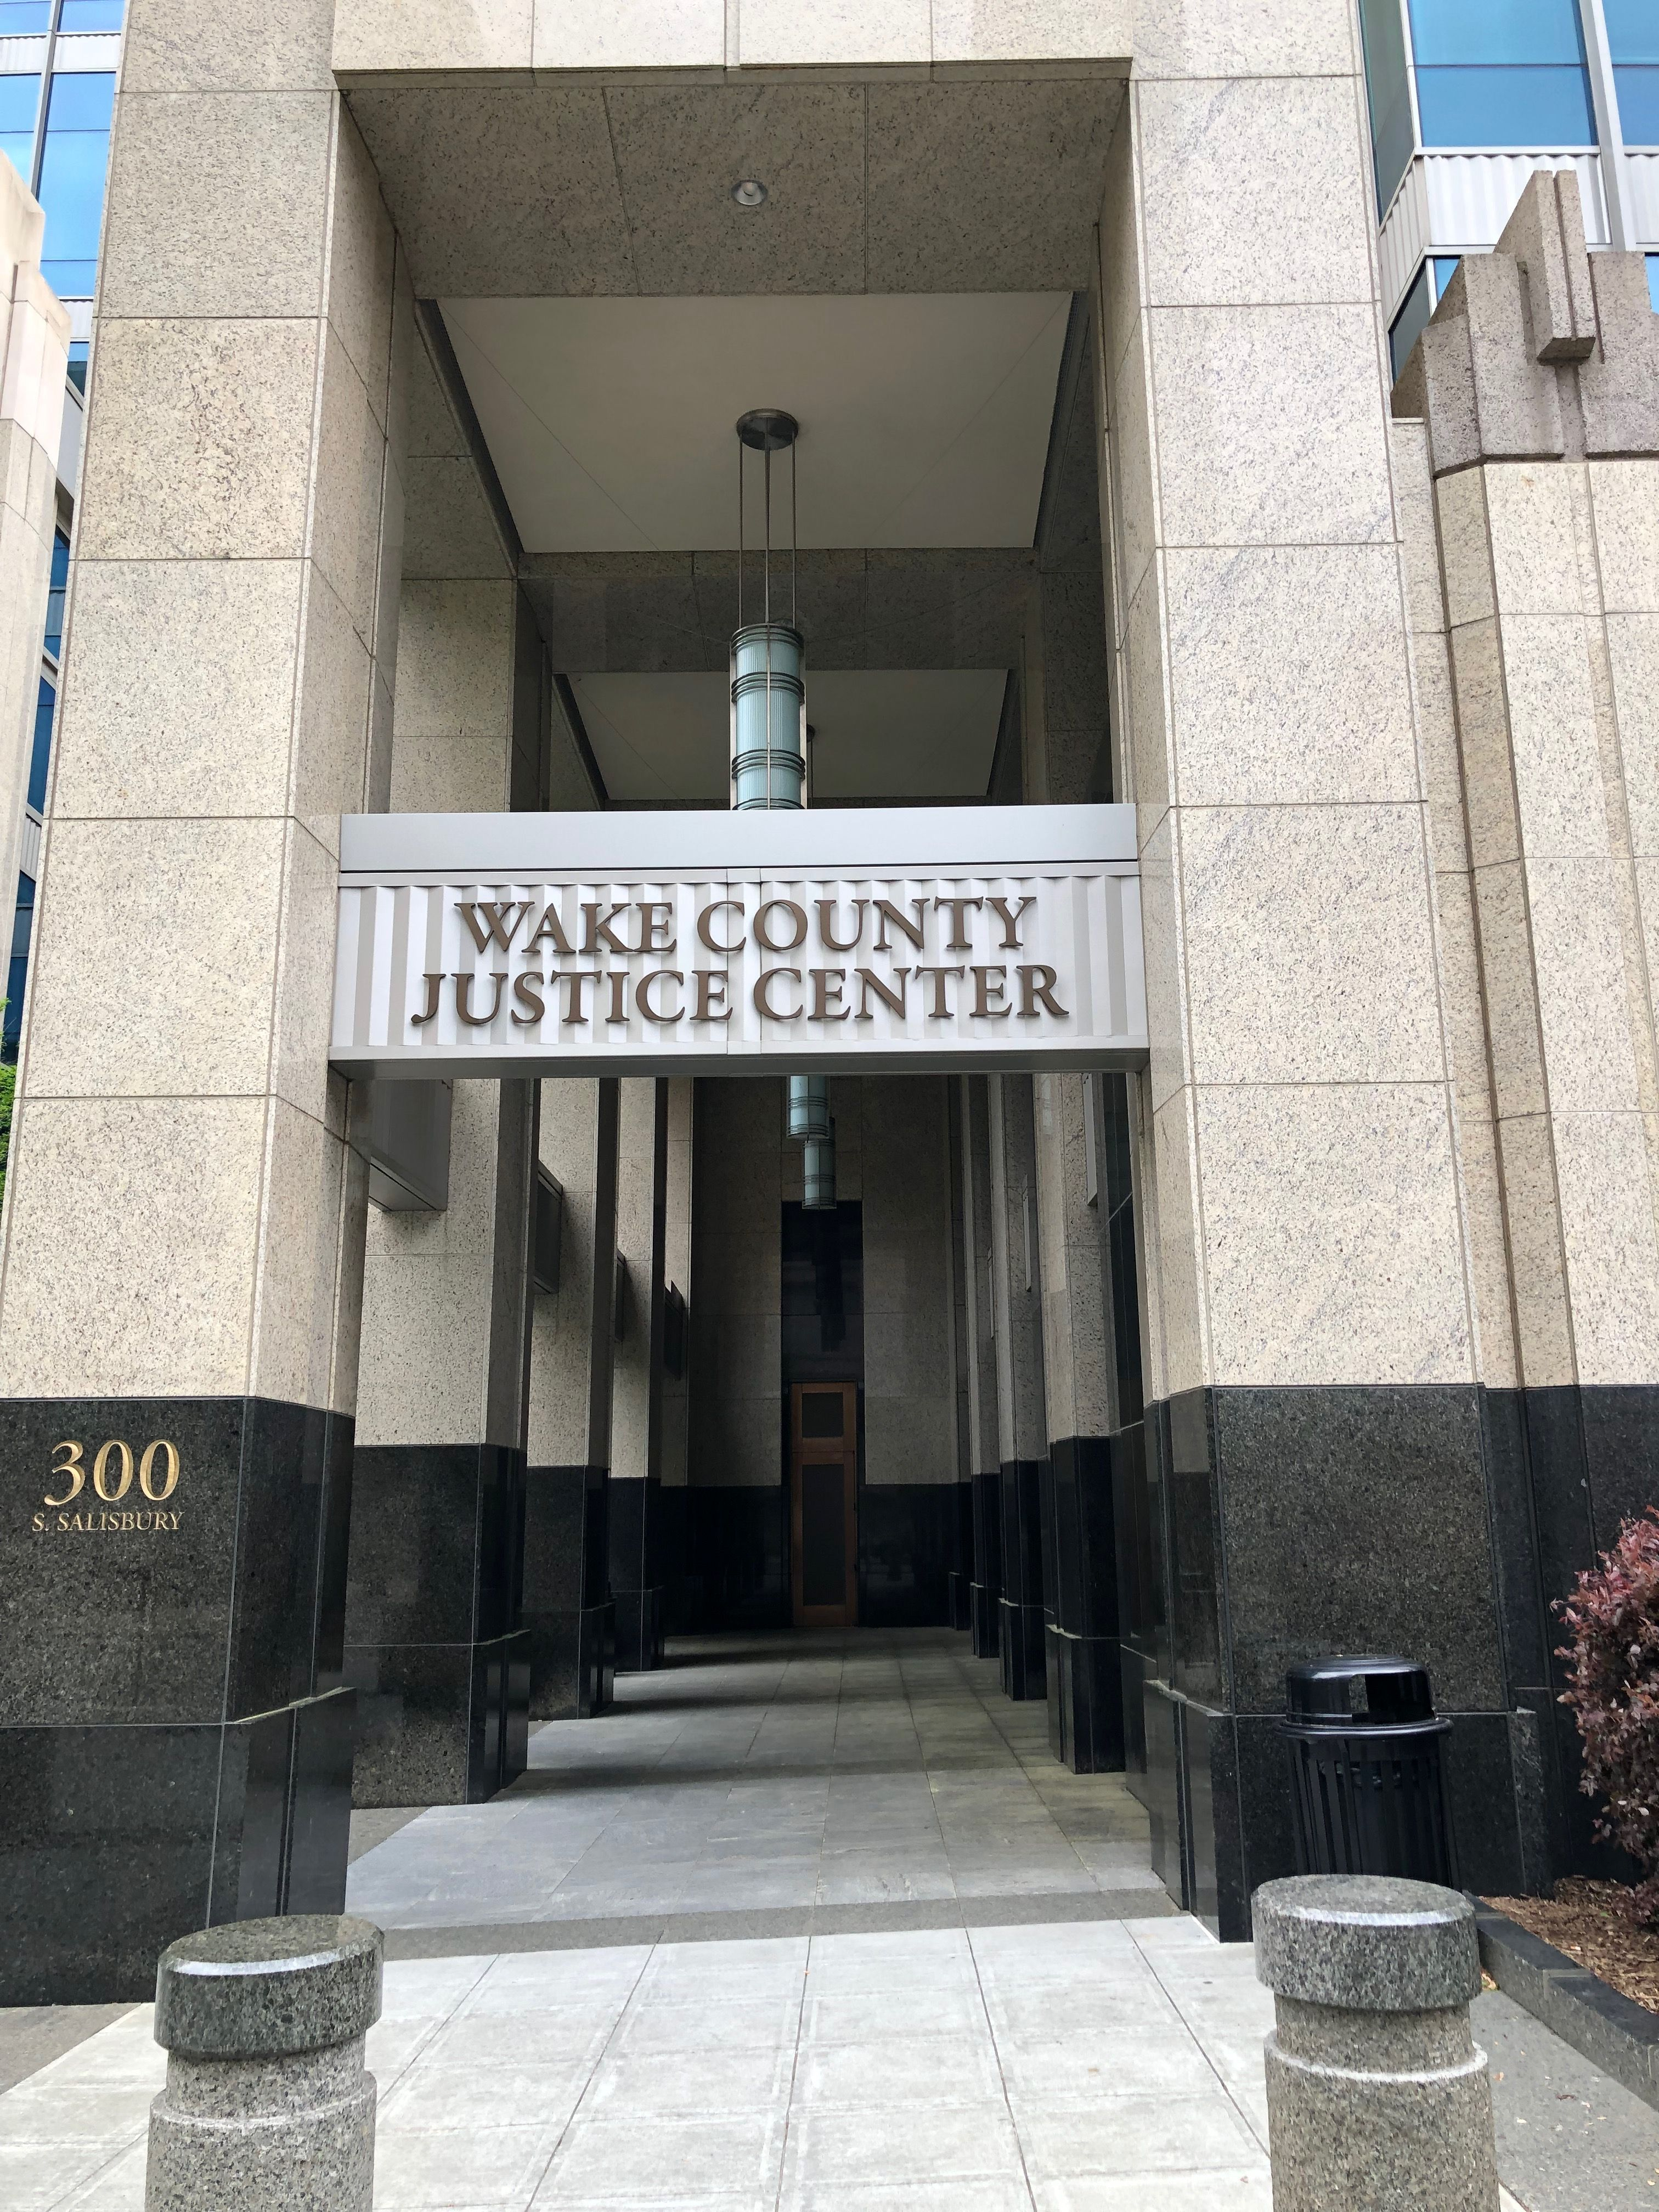 Entryway Of Wake County Justice Center In Raleigh North Carolina Paul Chandler April 2019 Wake County Warren County North Carolina